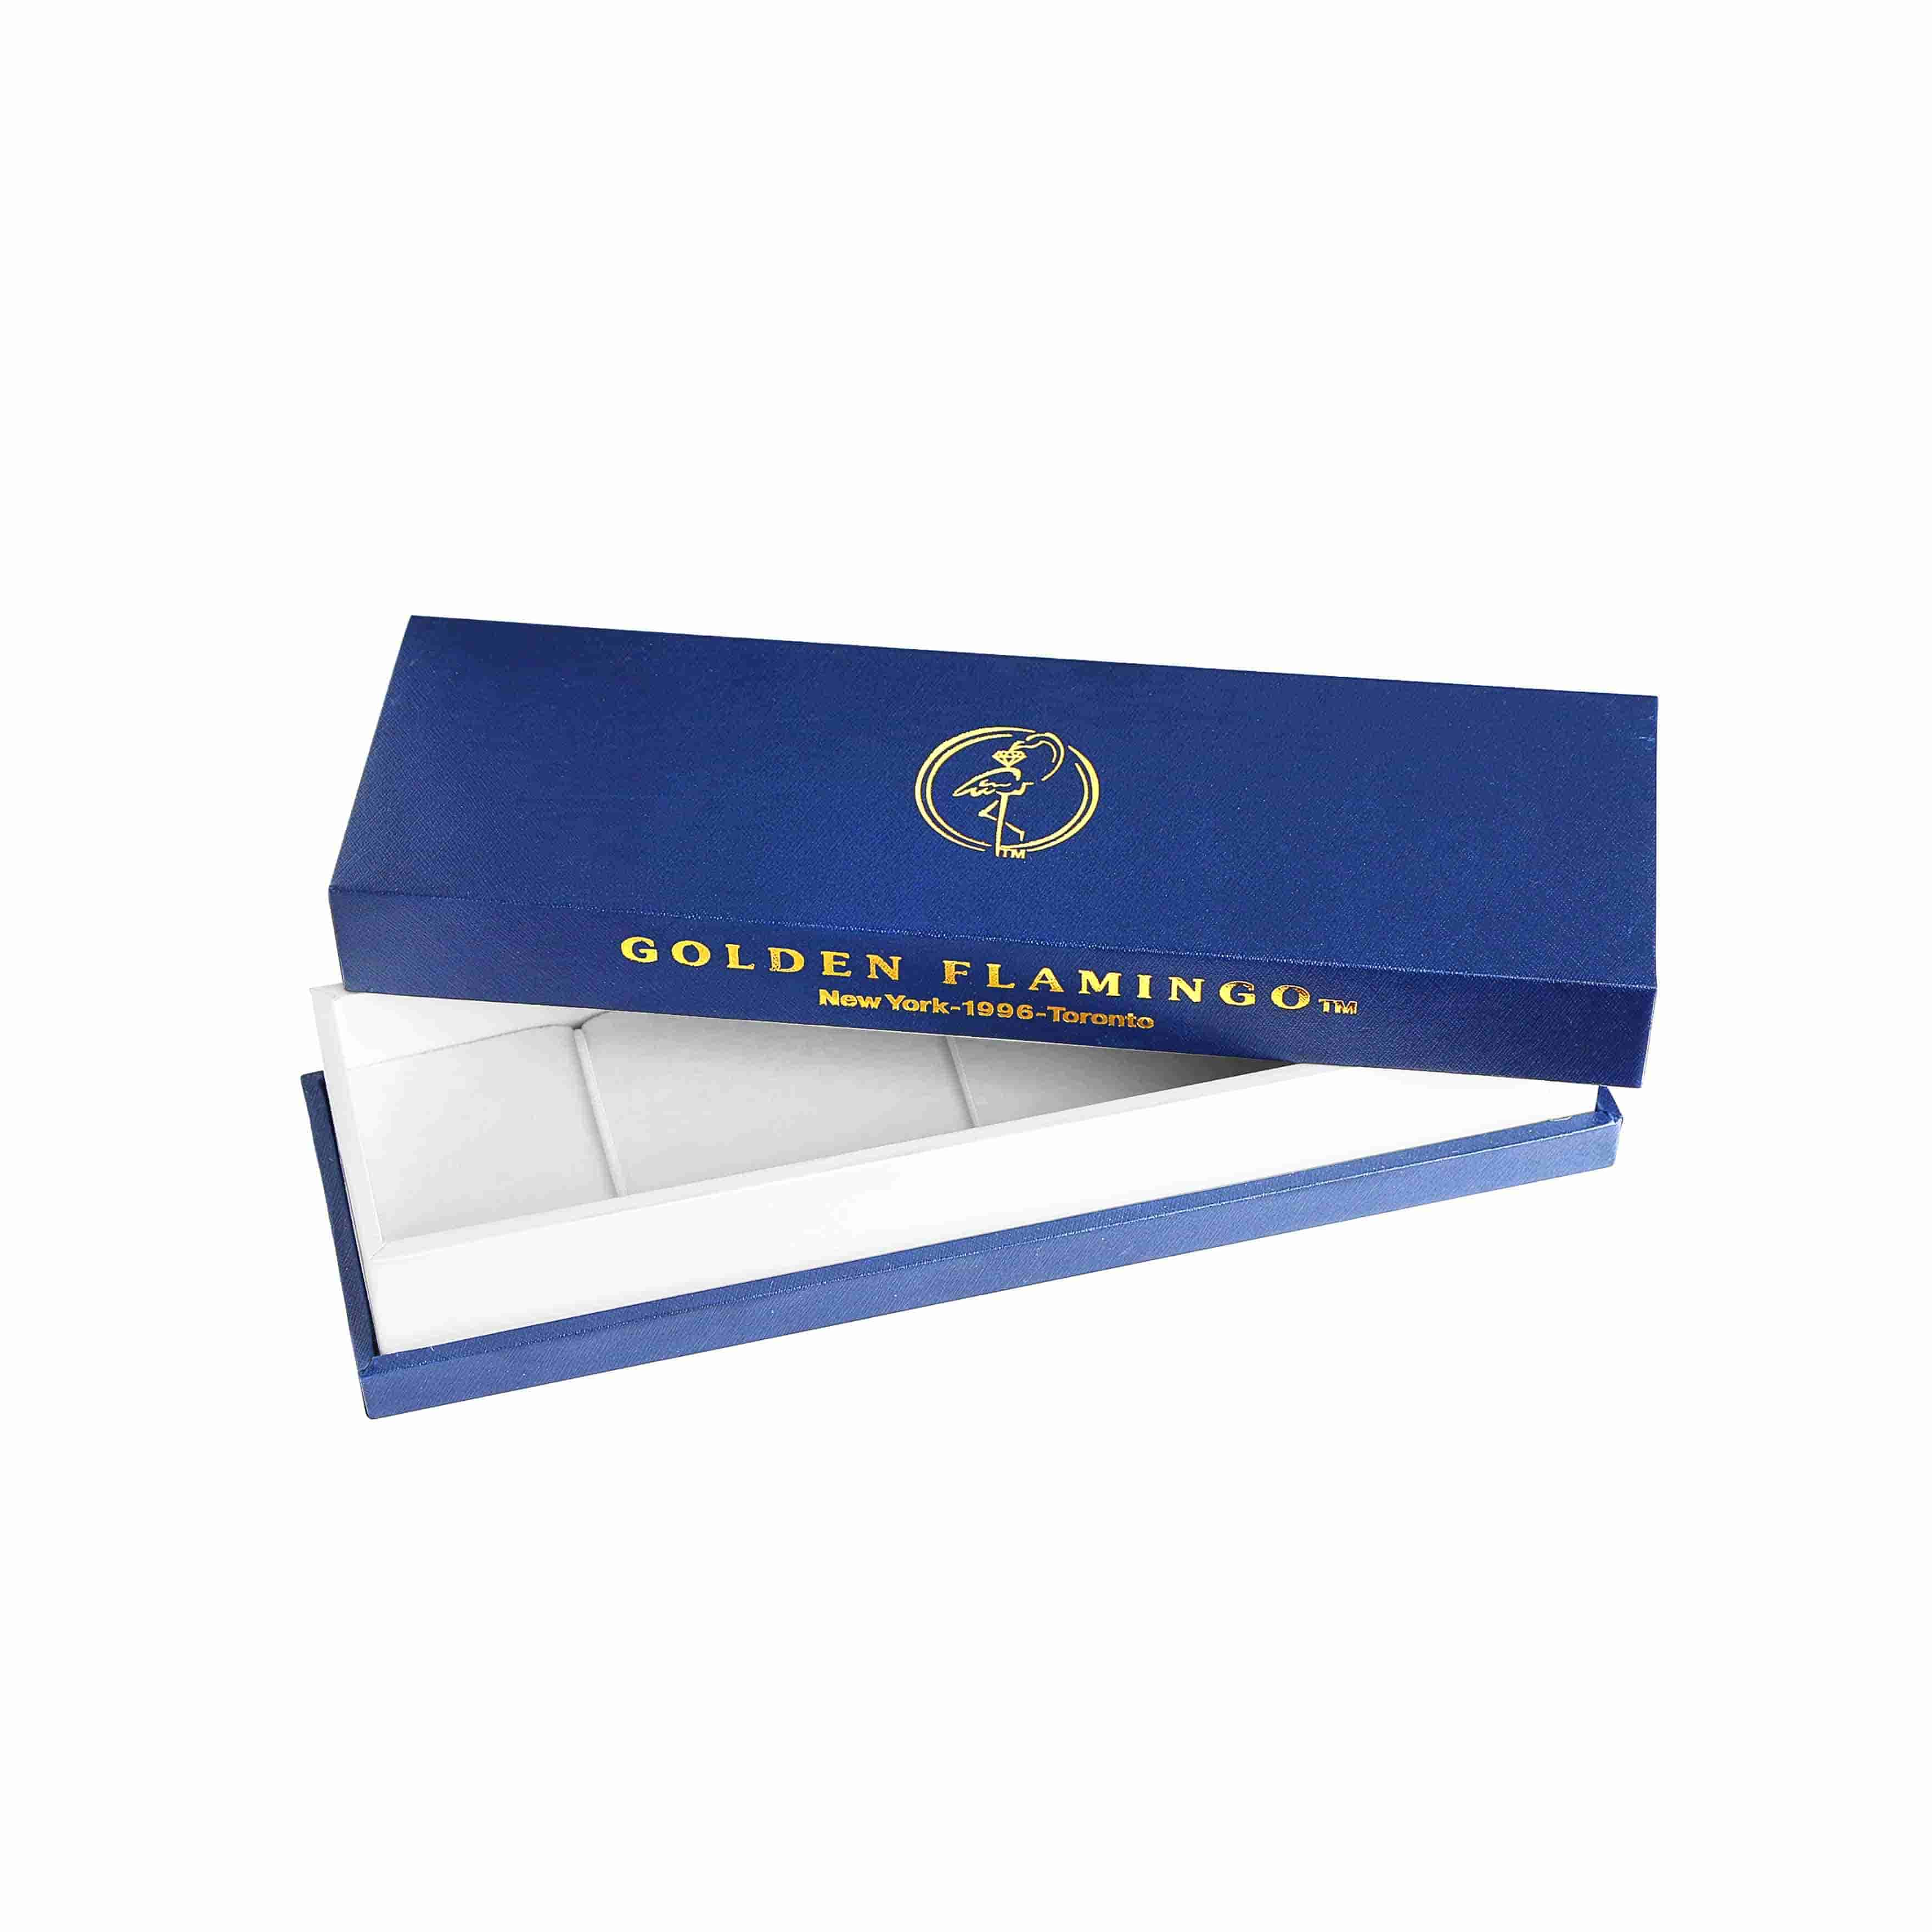 Boutique-quality Gift Box for Gold Bracelet by Golden Flamingo